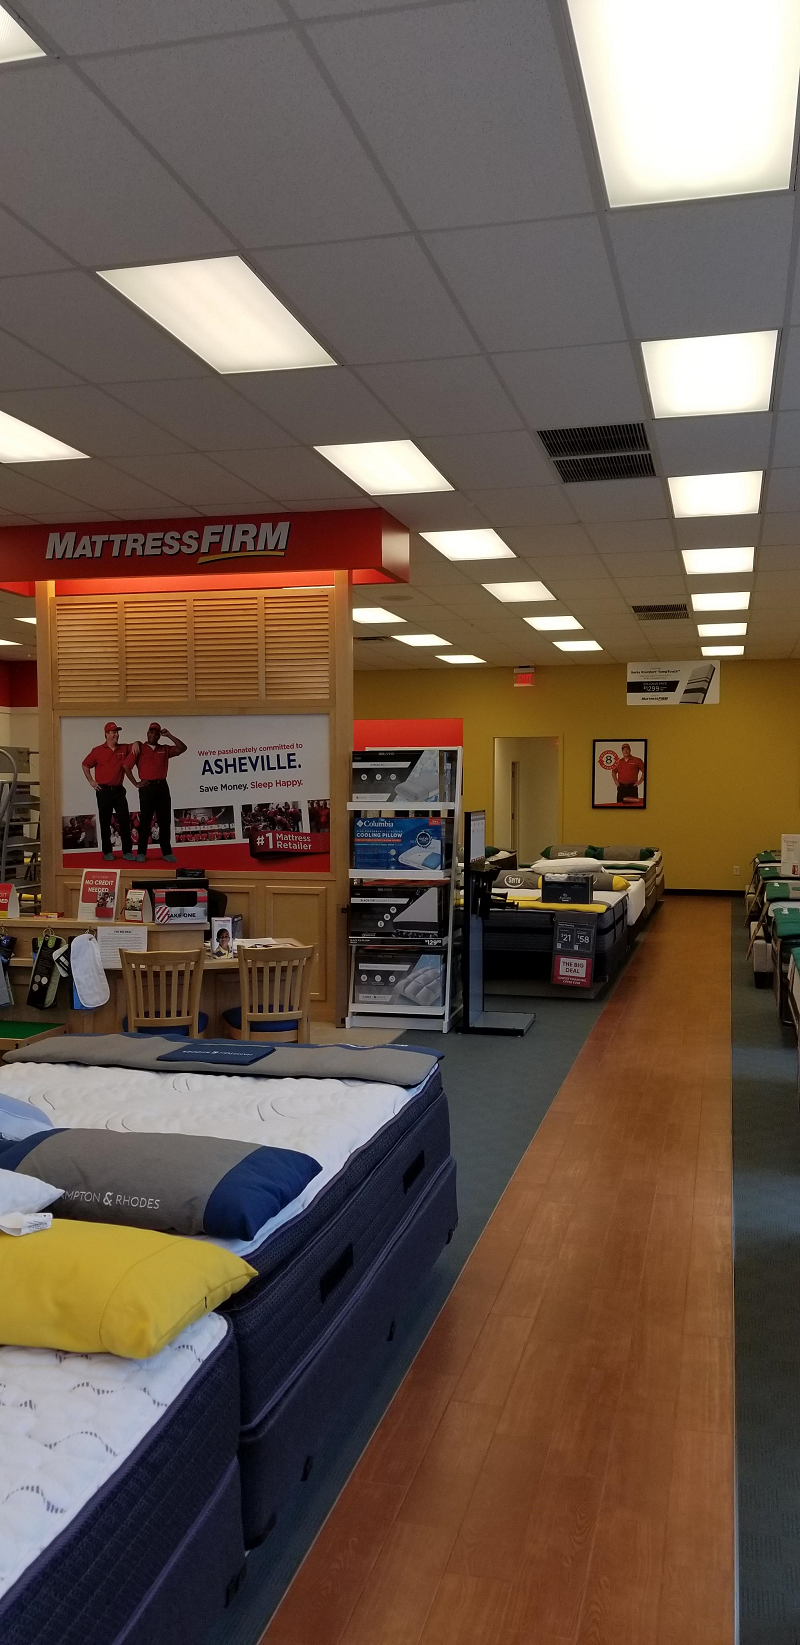 Mattress Firm Asheville North 209 Tunnel Rd Asheville Nc